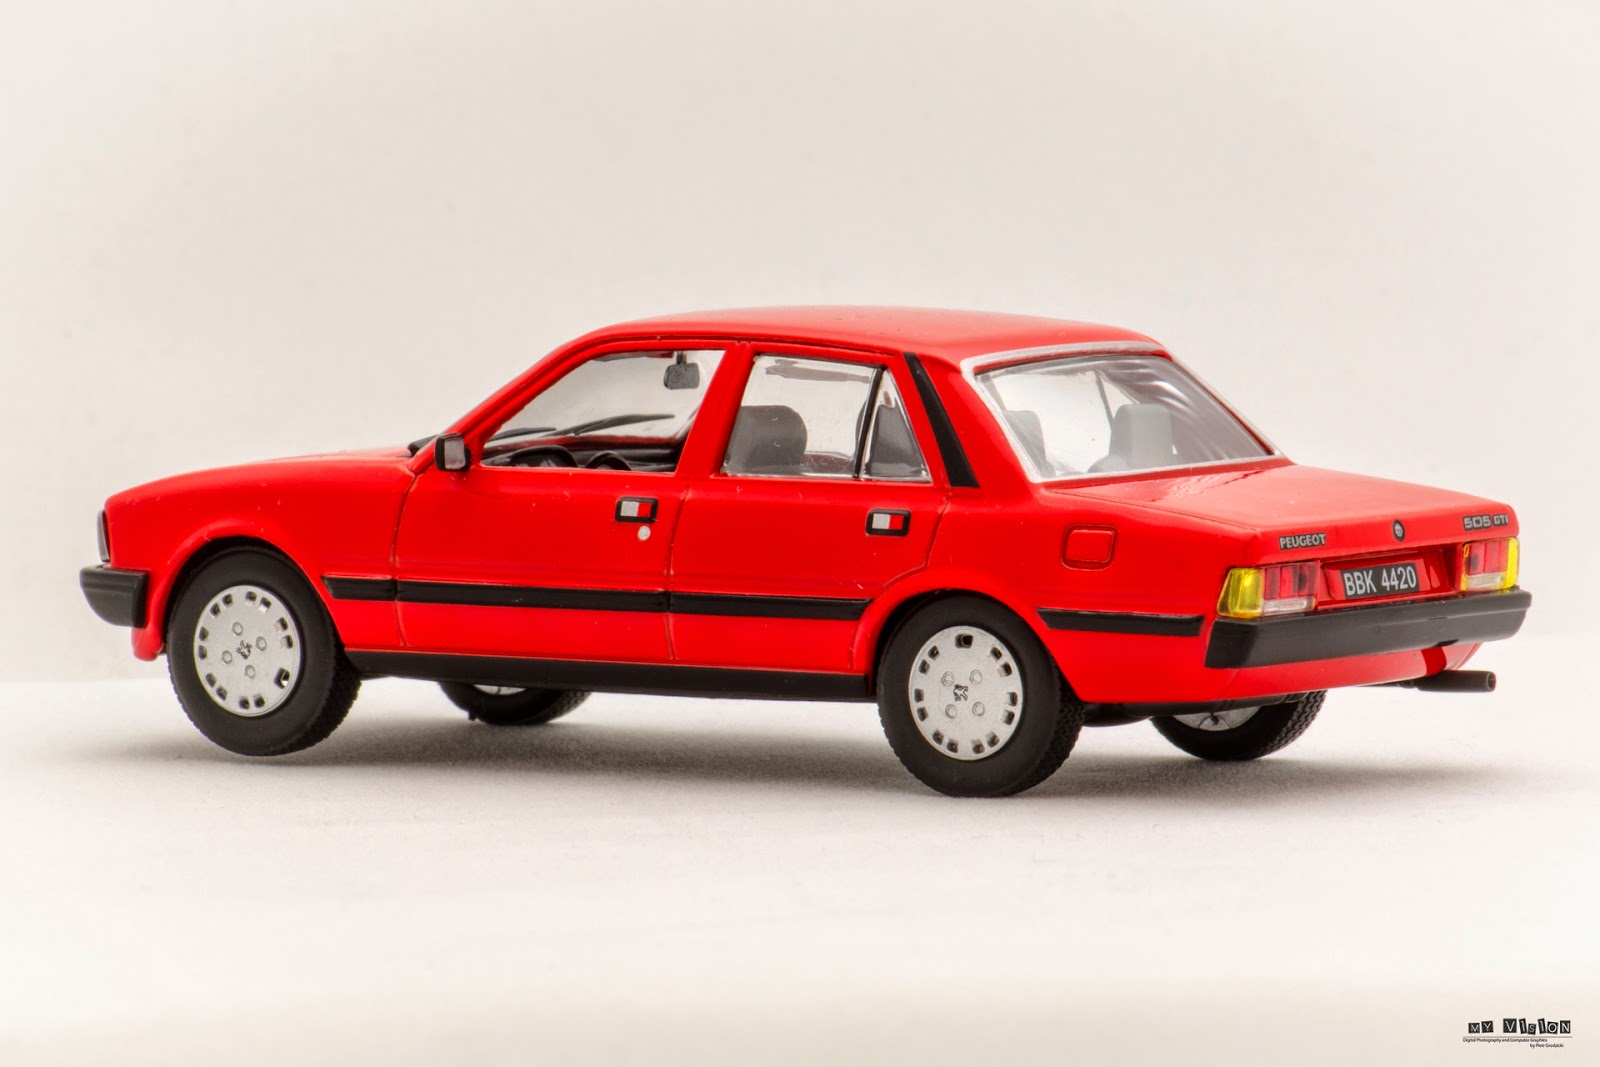 Peugeot 405 photo gallery Cached